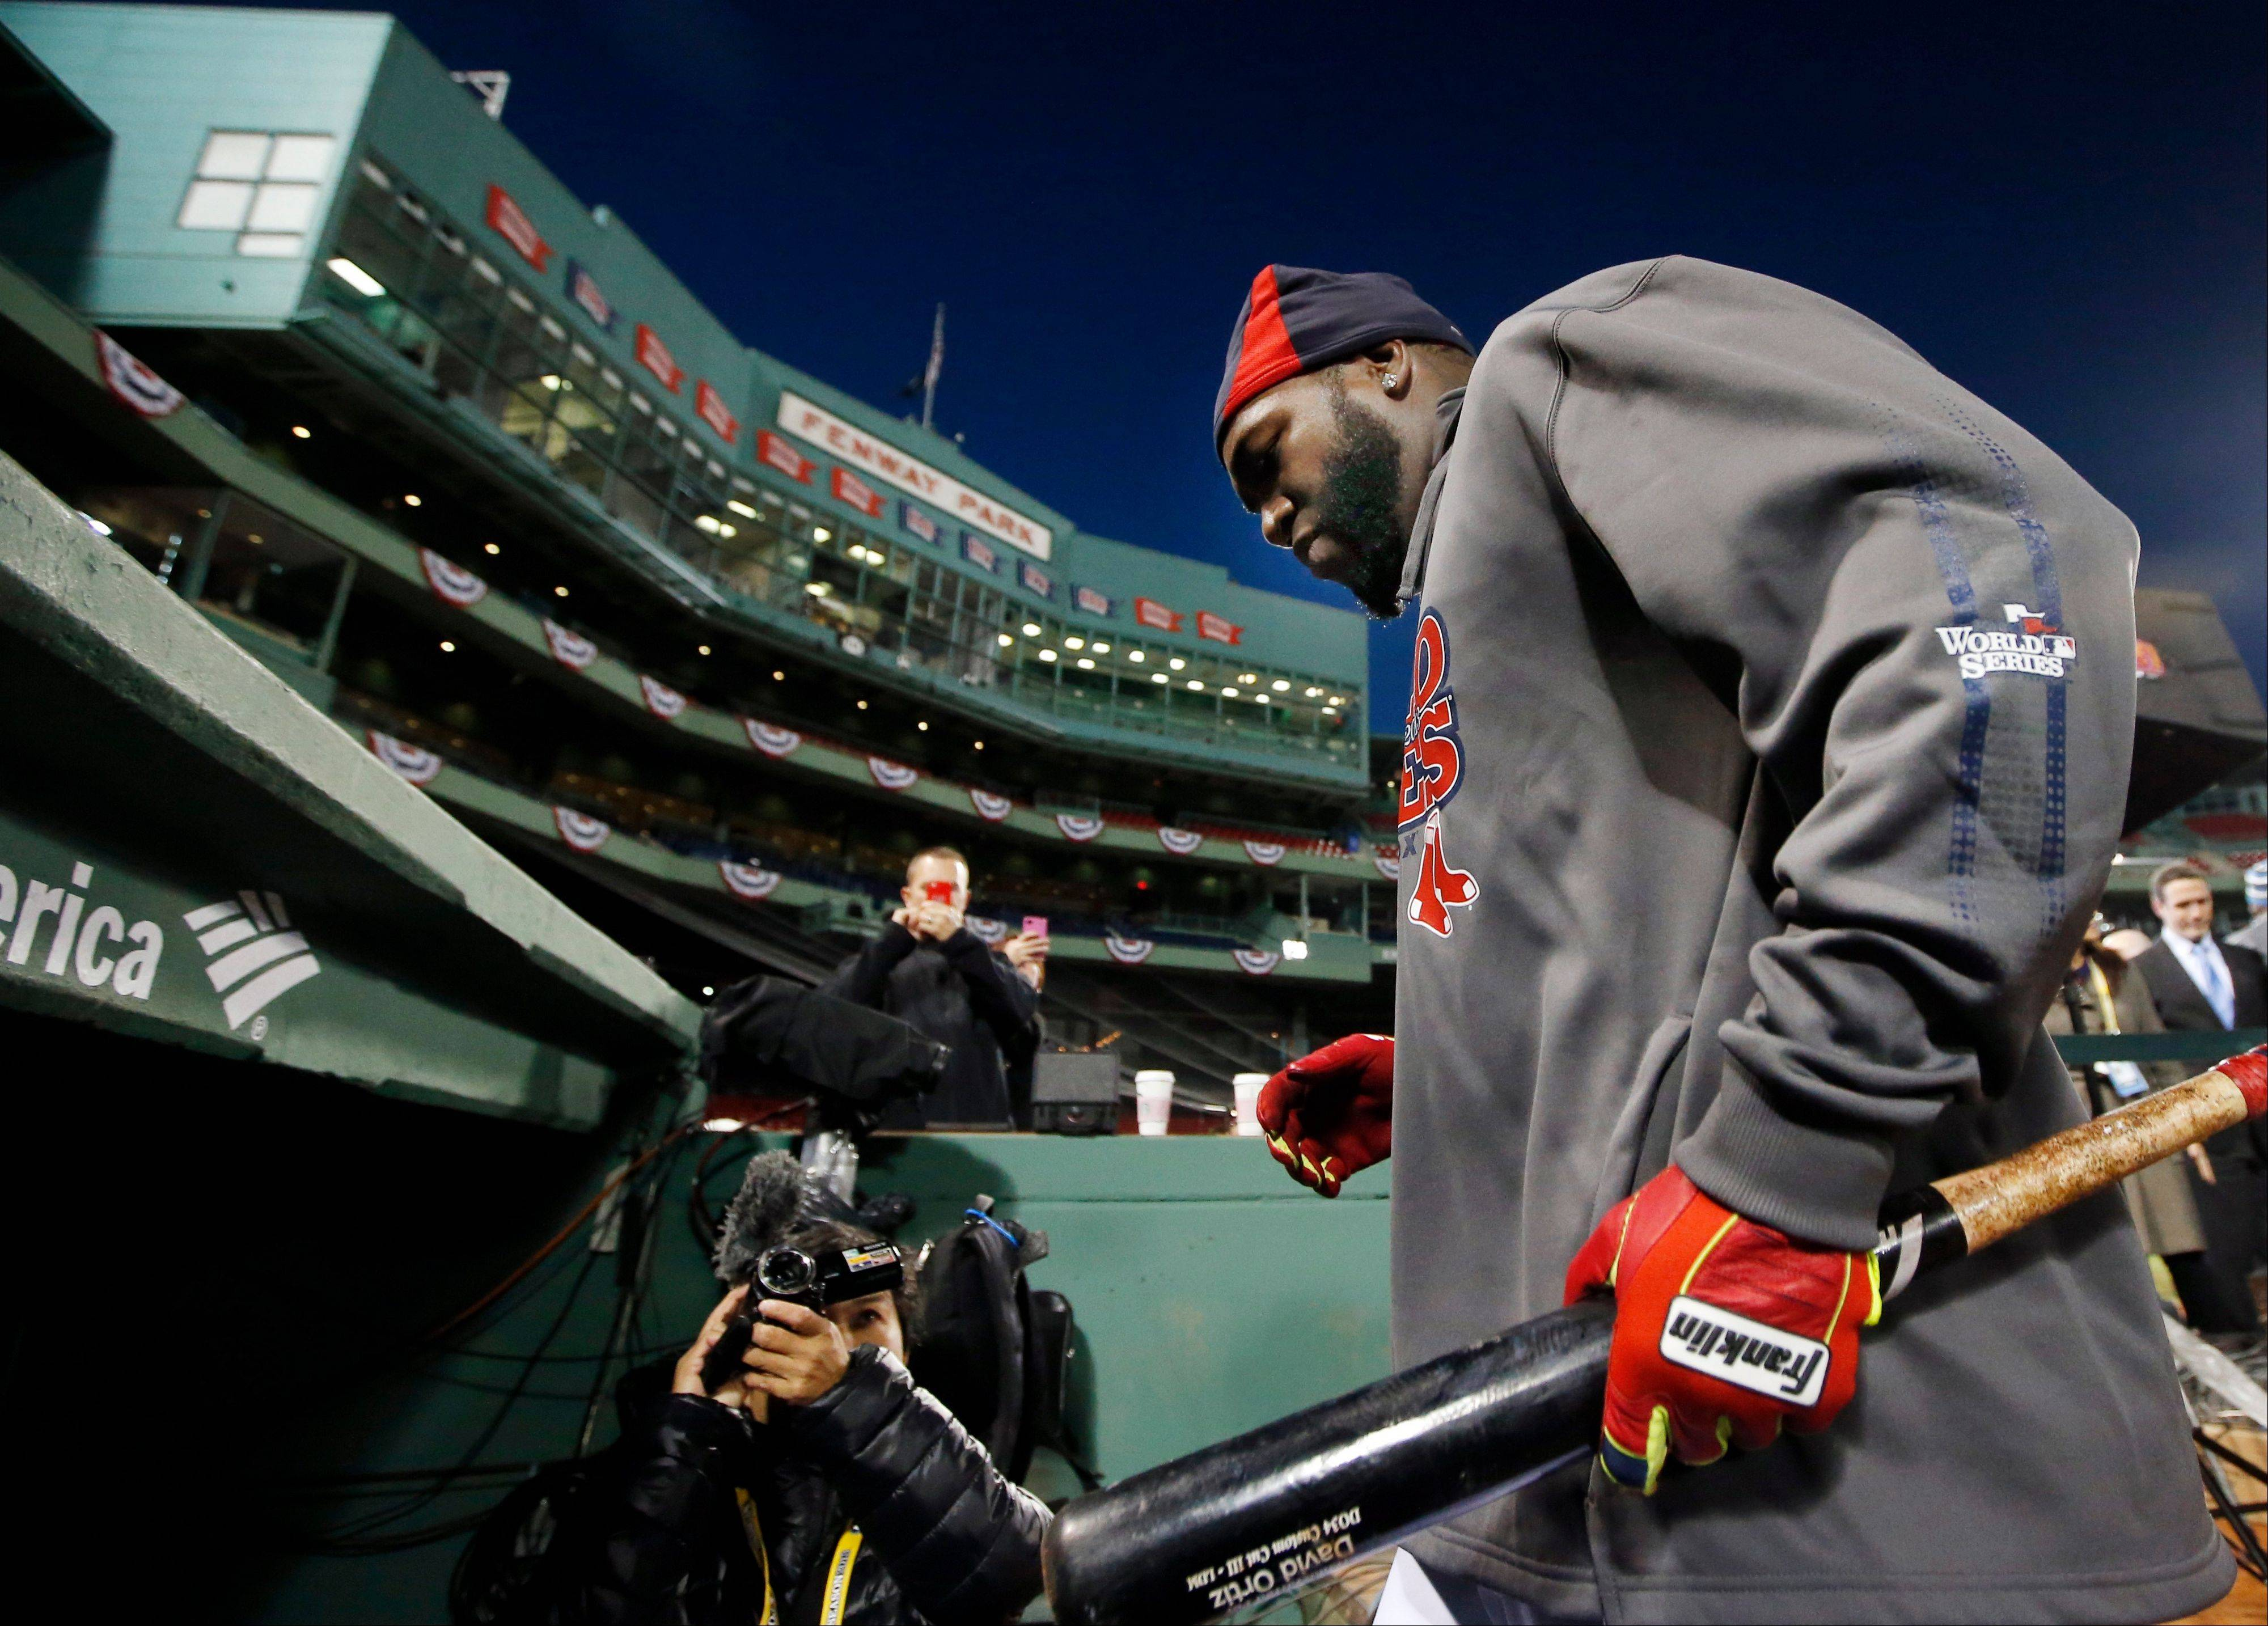 Boston Red Sox designated hitter David Ortiz walks into the dugout after a workout Tuesday at Fenway Park in Boston. The Red Sox are scheduled to host the St. Louis Cardinals in Game 6 of baseball's World Series on Wednesday.